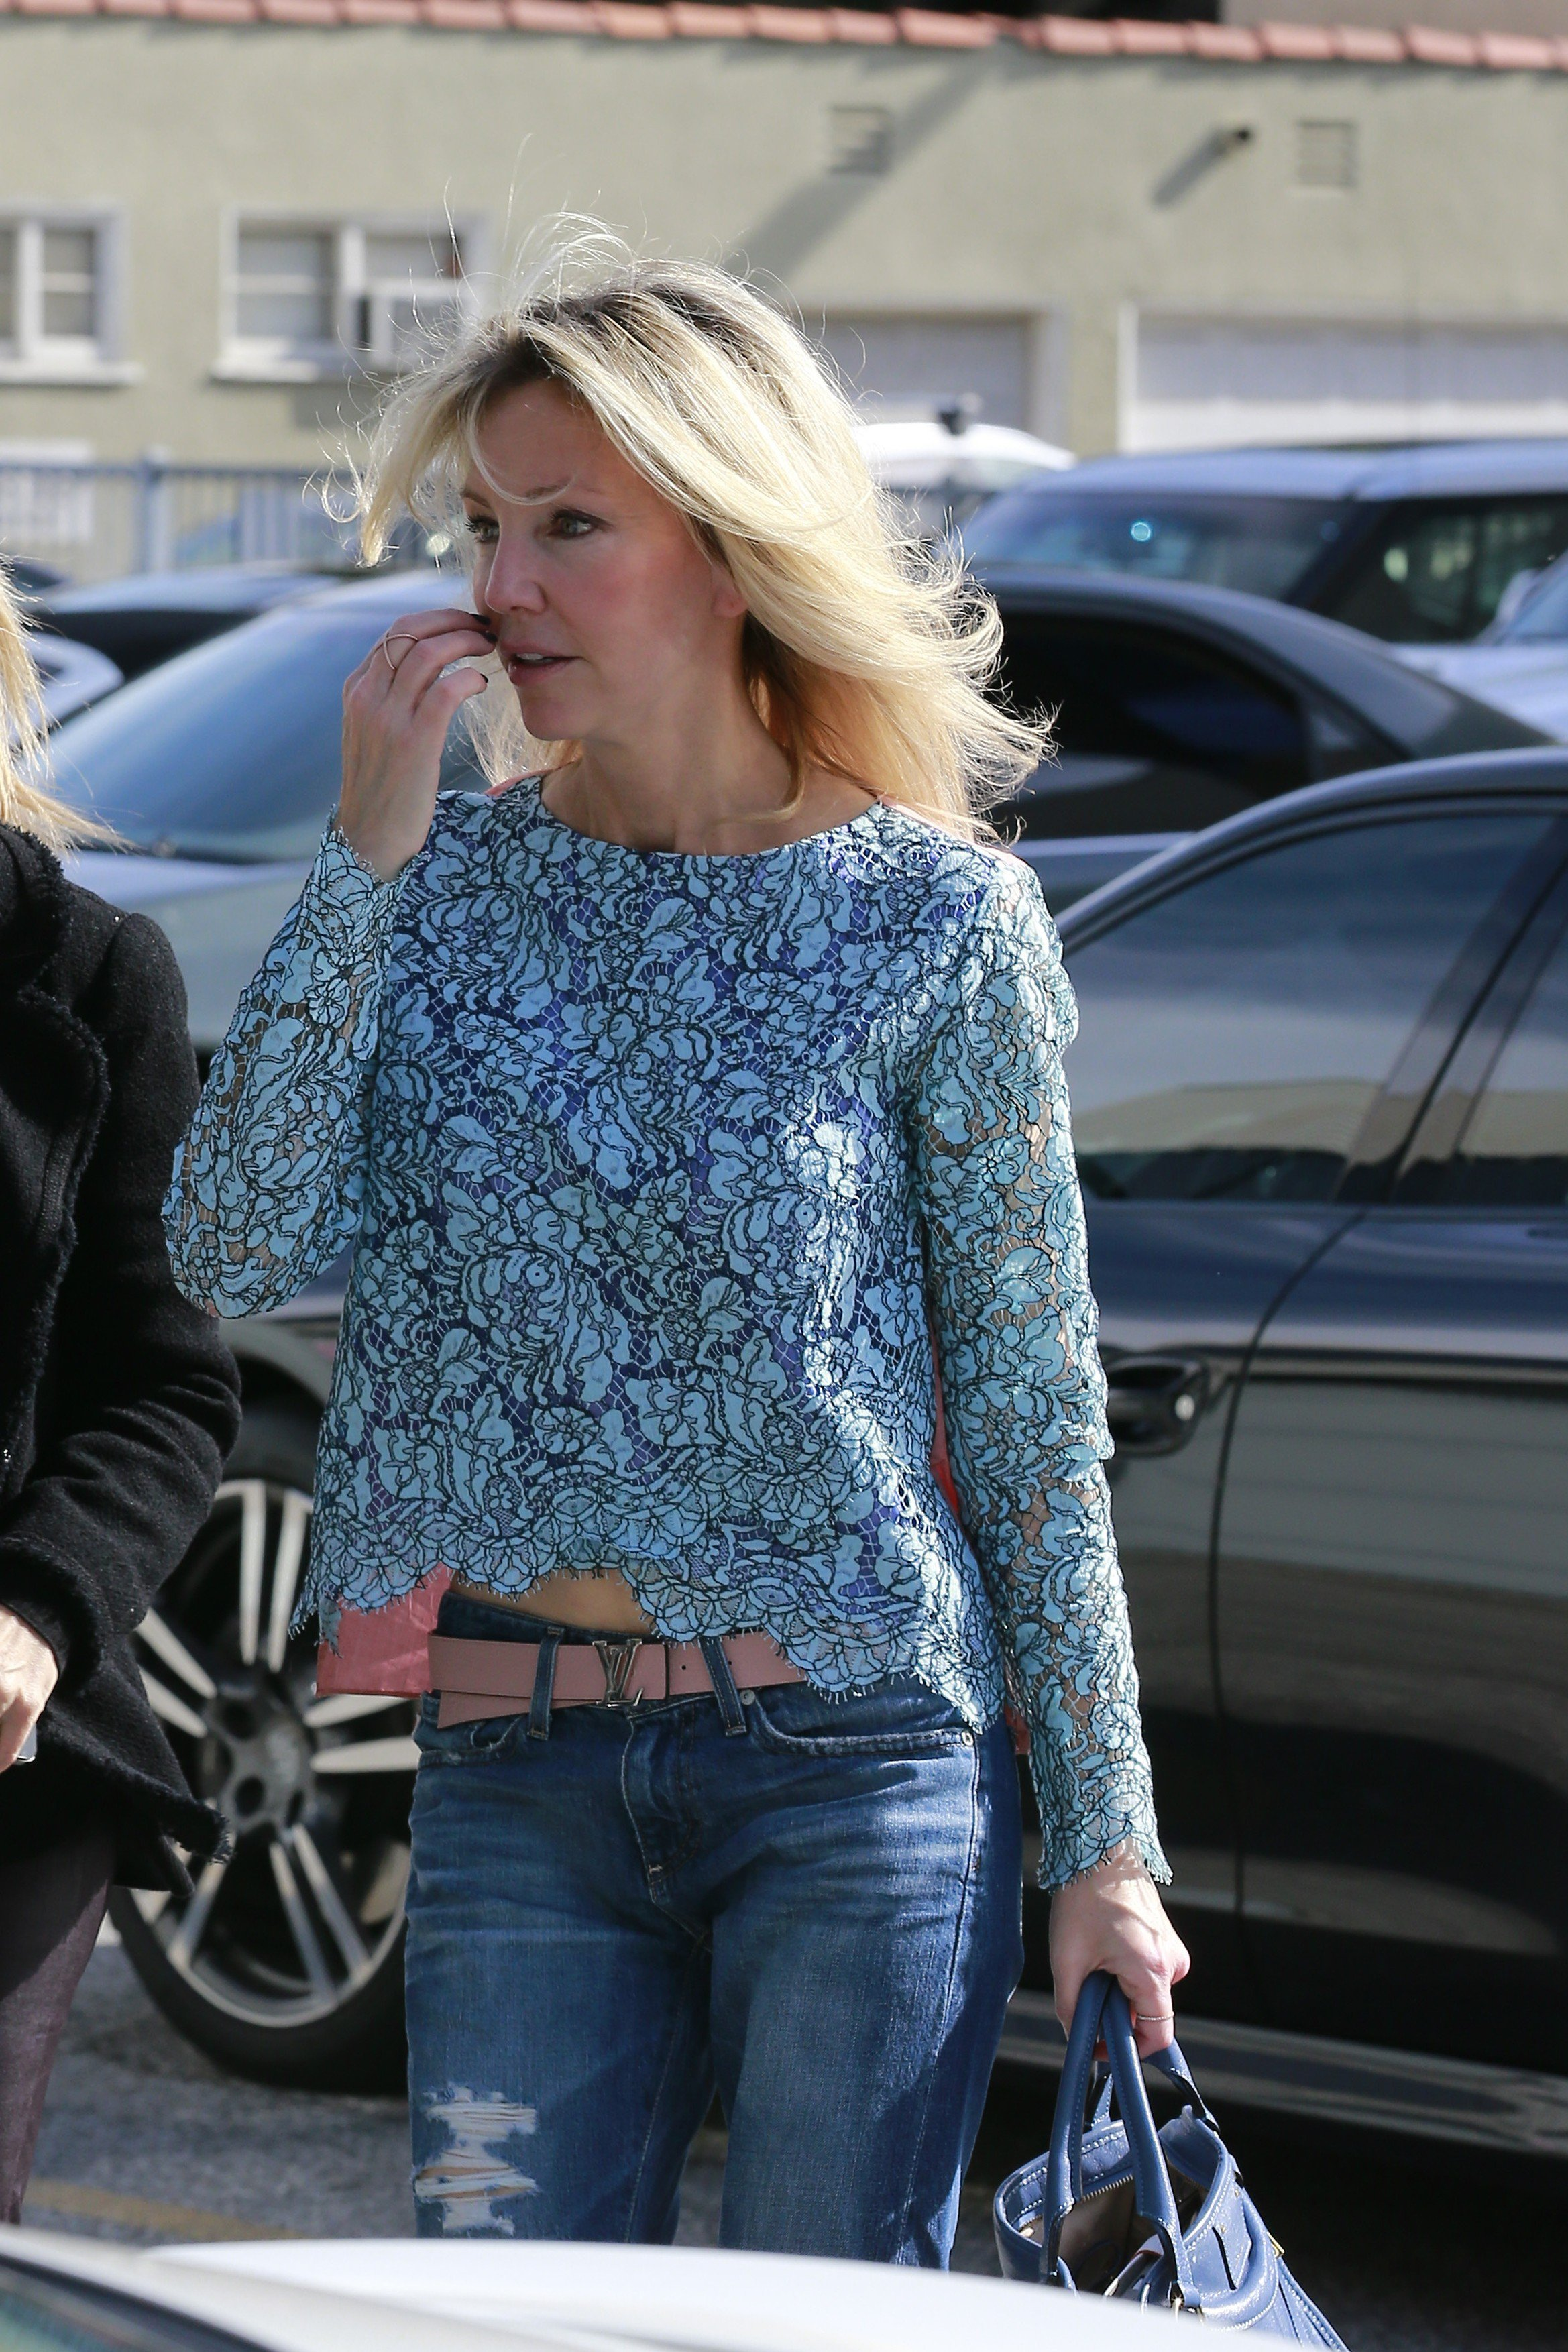 112359, LOS ANGELES, CALIFORNIA - Friday January 31, 2014. A makeup-free Heather Locklear does some shopping at XIV Karats in Los Angeles., Image: 183413264, License: Rights-managed, Restrictions: , Model Release: no, Credit line: Profimedia, Pacific coast news